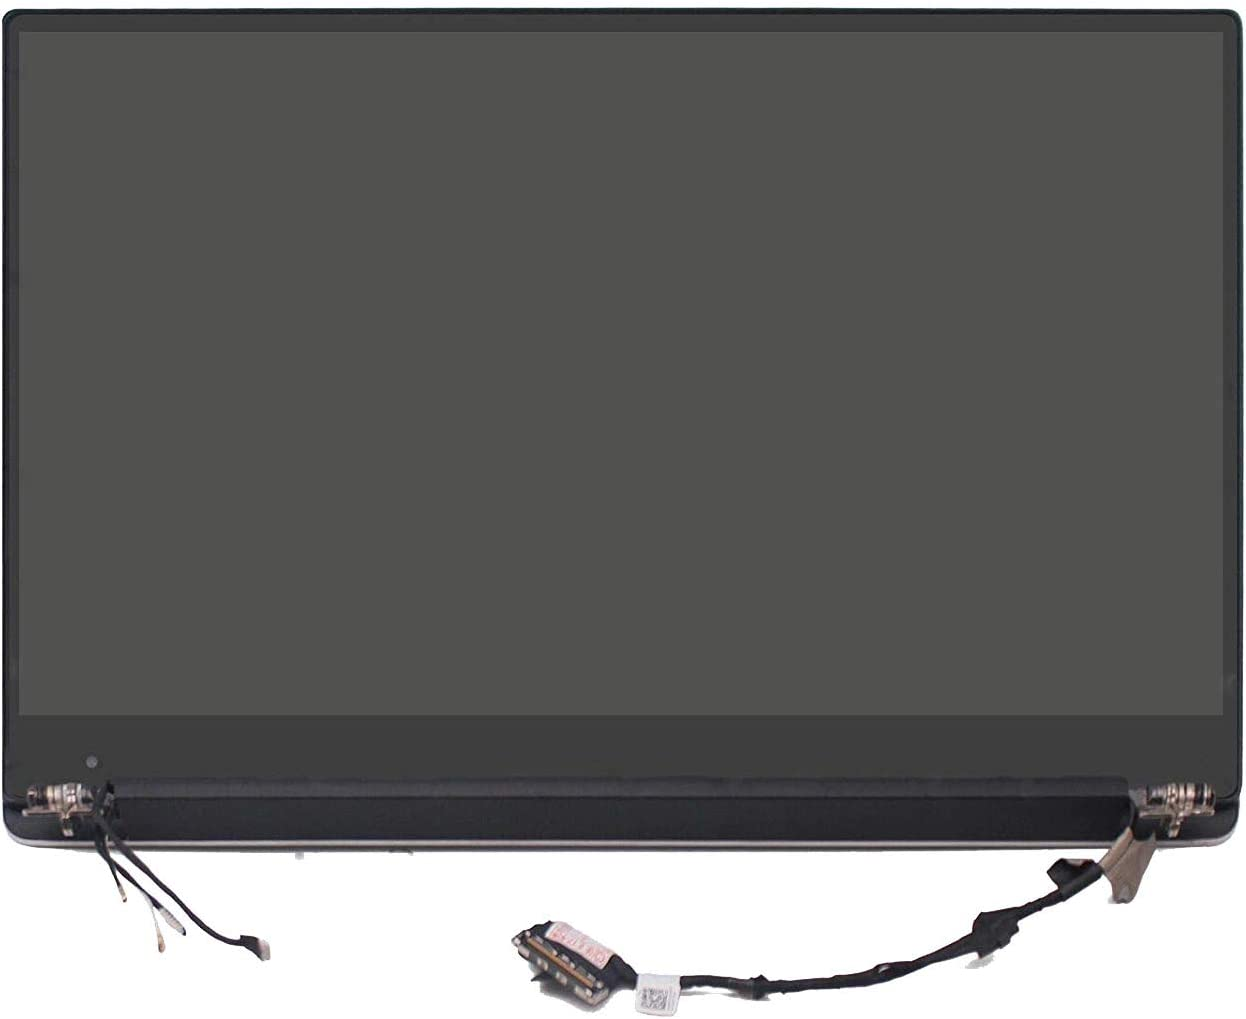 Bblon LCD Touch Screen Panel Display Assembly 3200x1800 for Dell XPS 13 9360 P54G QHD